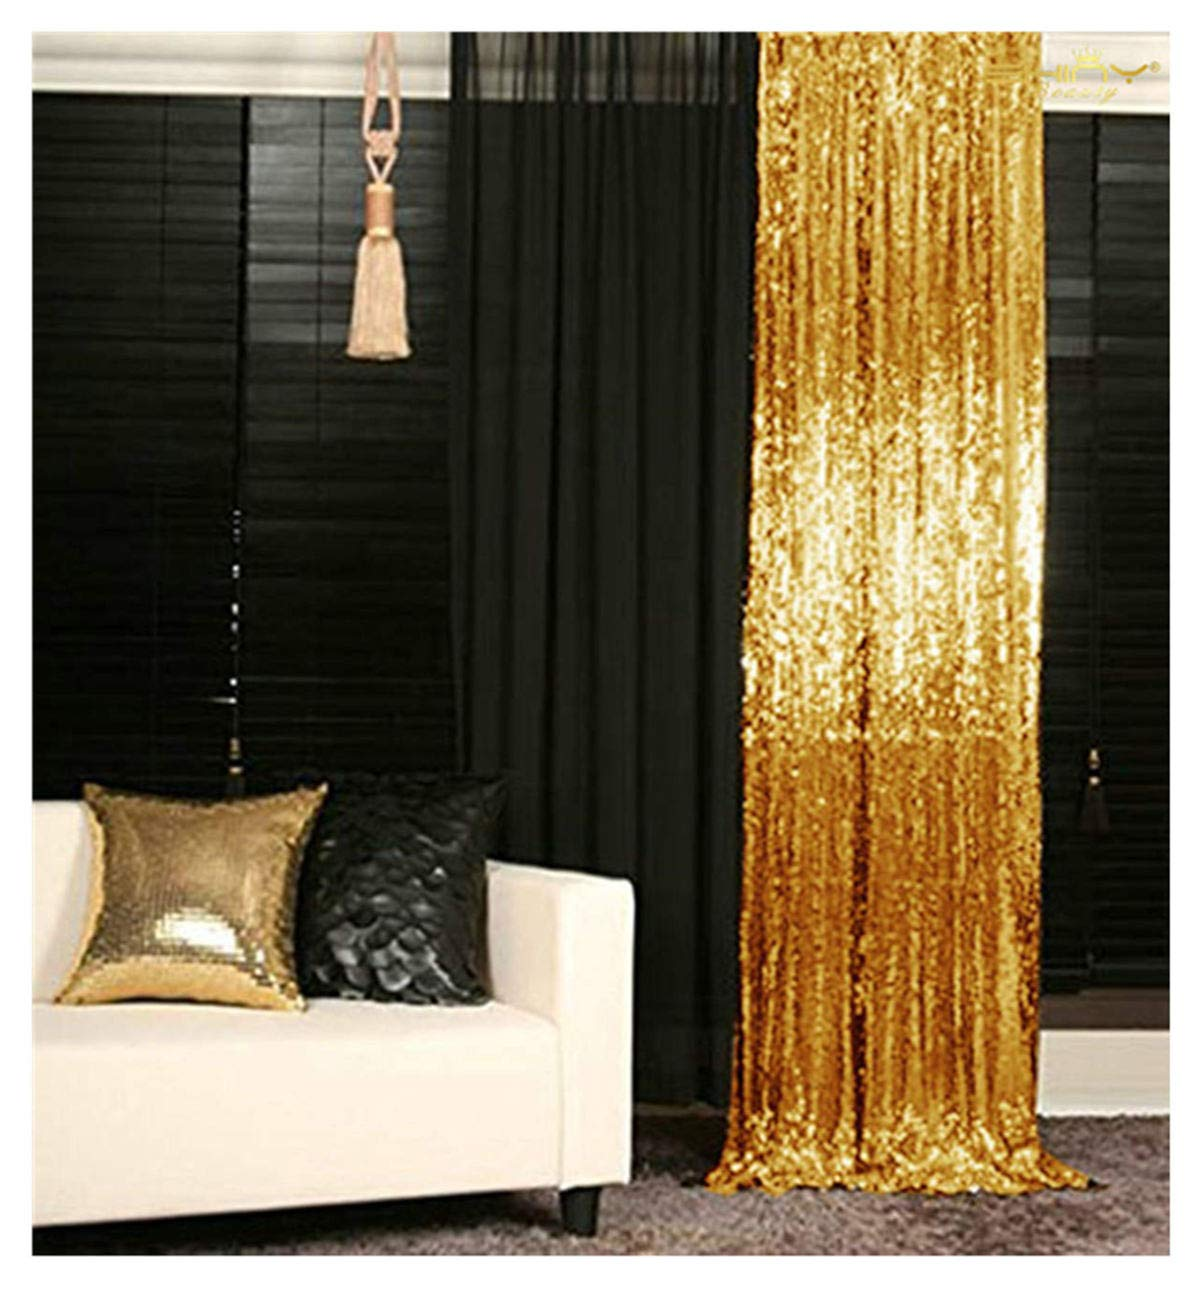 Sequin Curtain Backdrop 2 Panels 4FTx6FT Gold Backdrop Curtain Photo Booth Backdrop 48inx72in -190425E by ShiDianYi